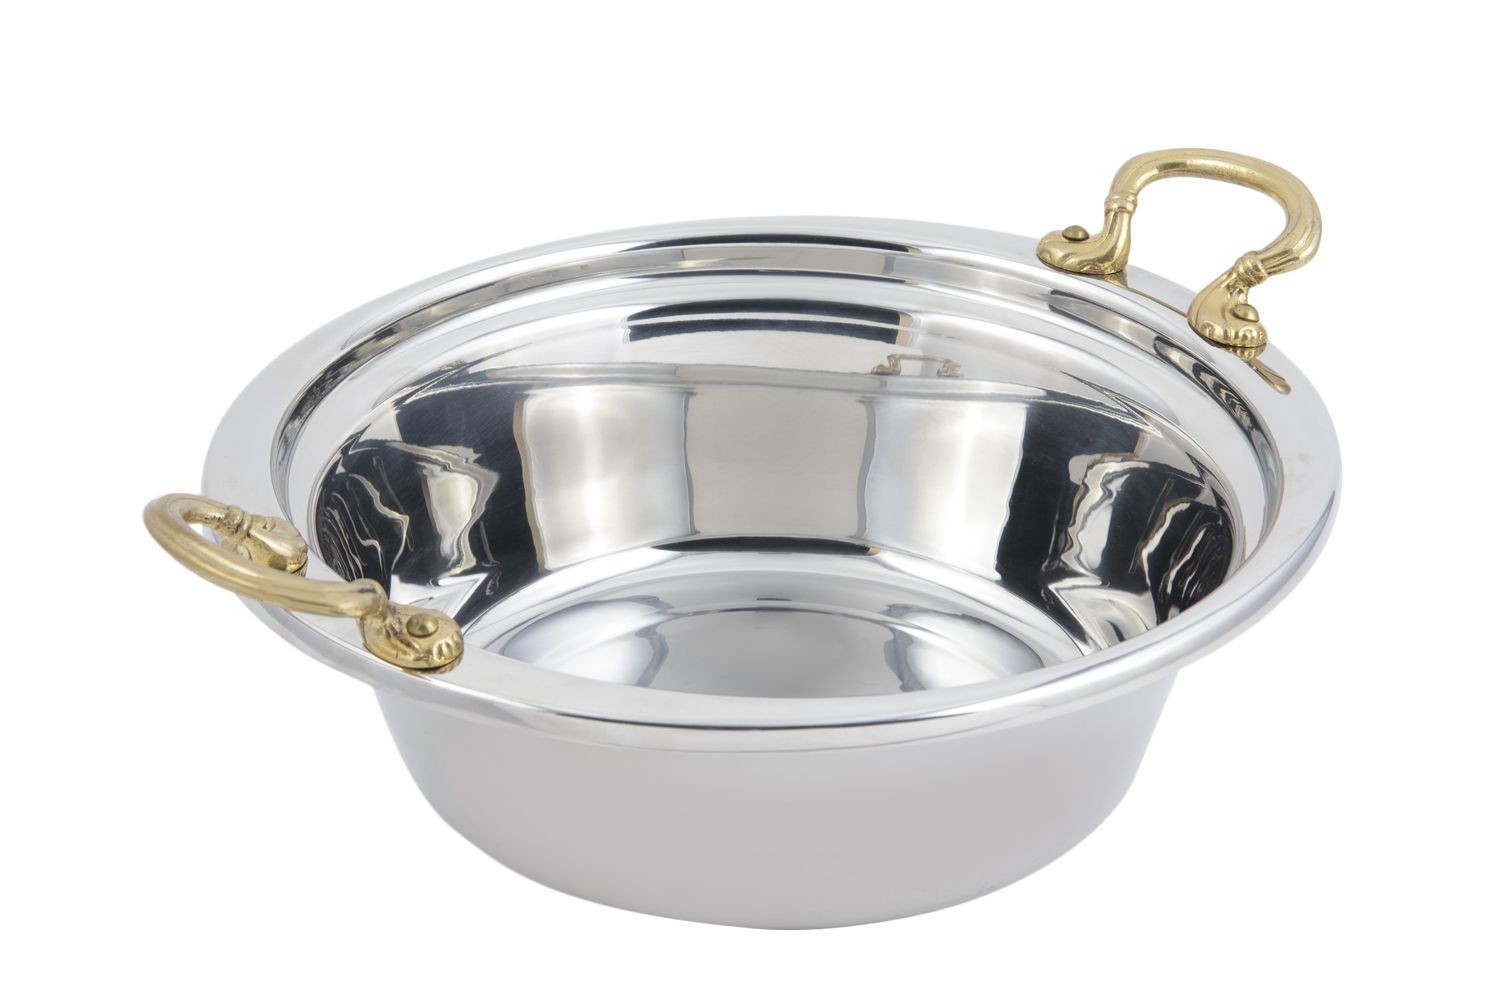 Bon Chef 5256HR Plain Design Casserole Dish with Round Brass Handles, 4 Qt.